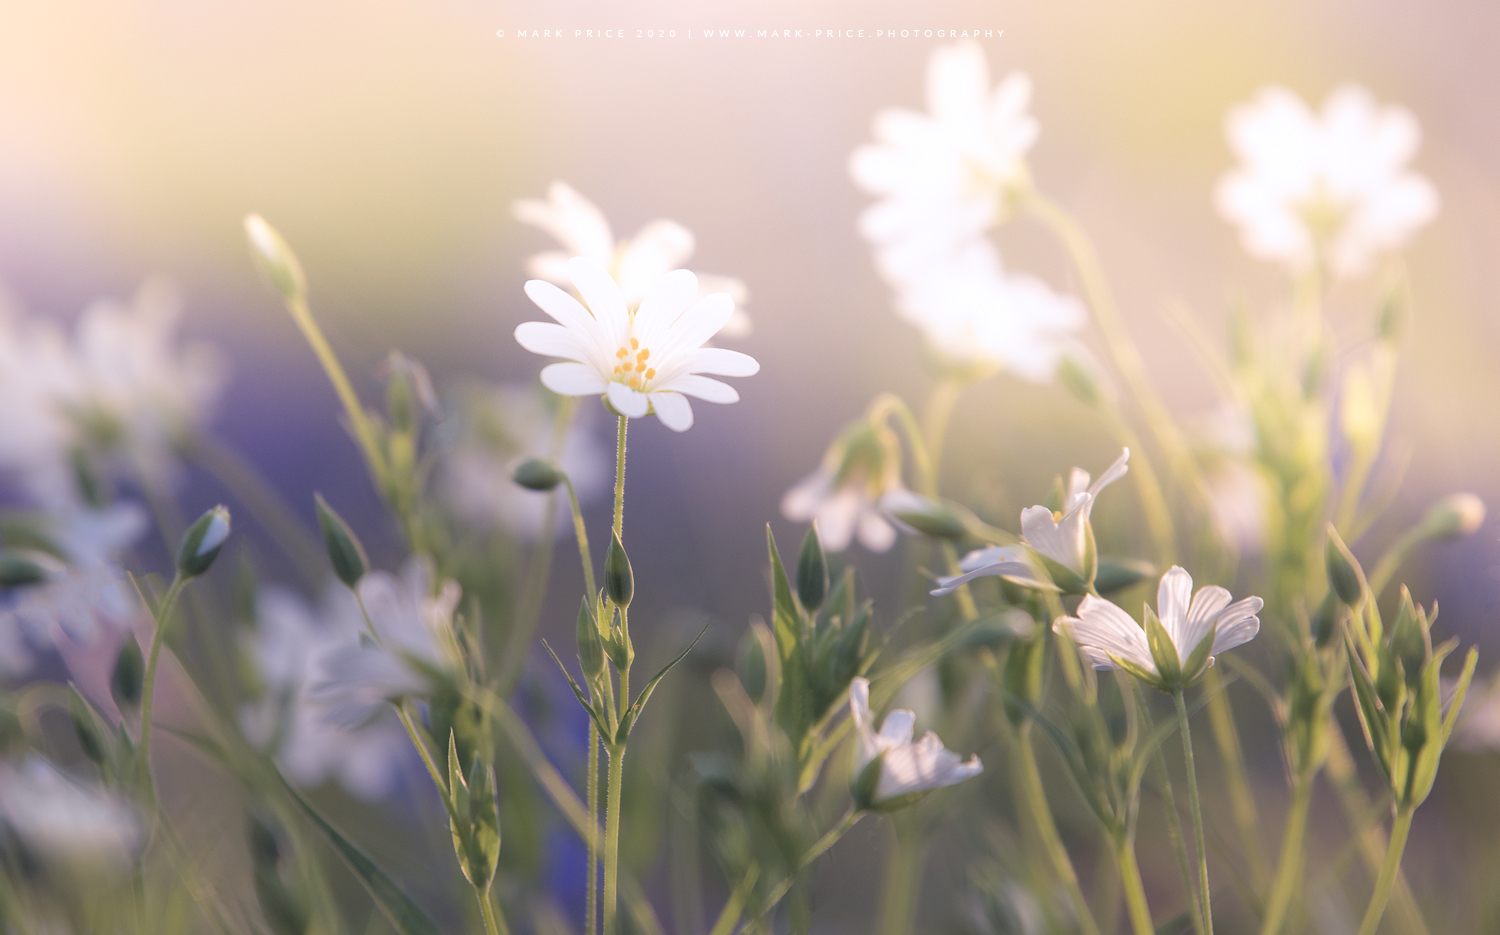 Late afternoon dreamy light in a Sussex field of spring flowers